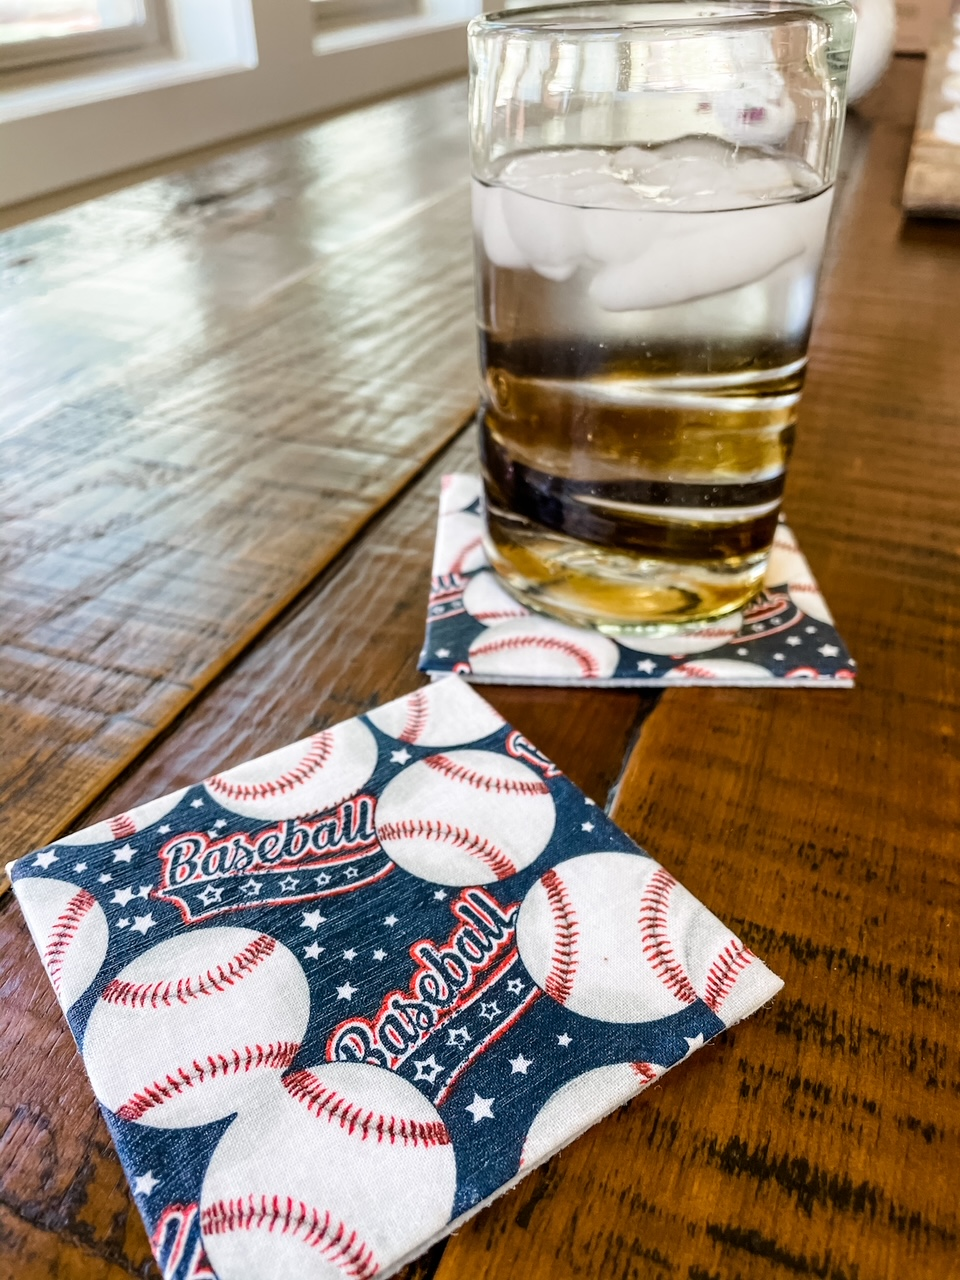 One of the easy no sew craft coasters with baseballs on it